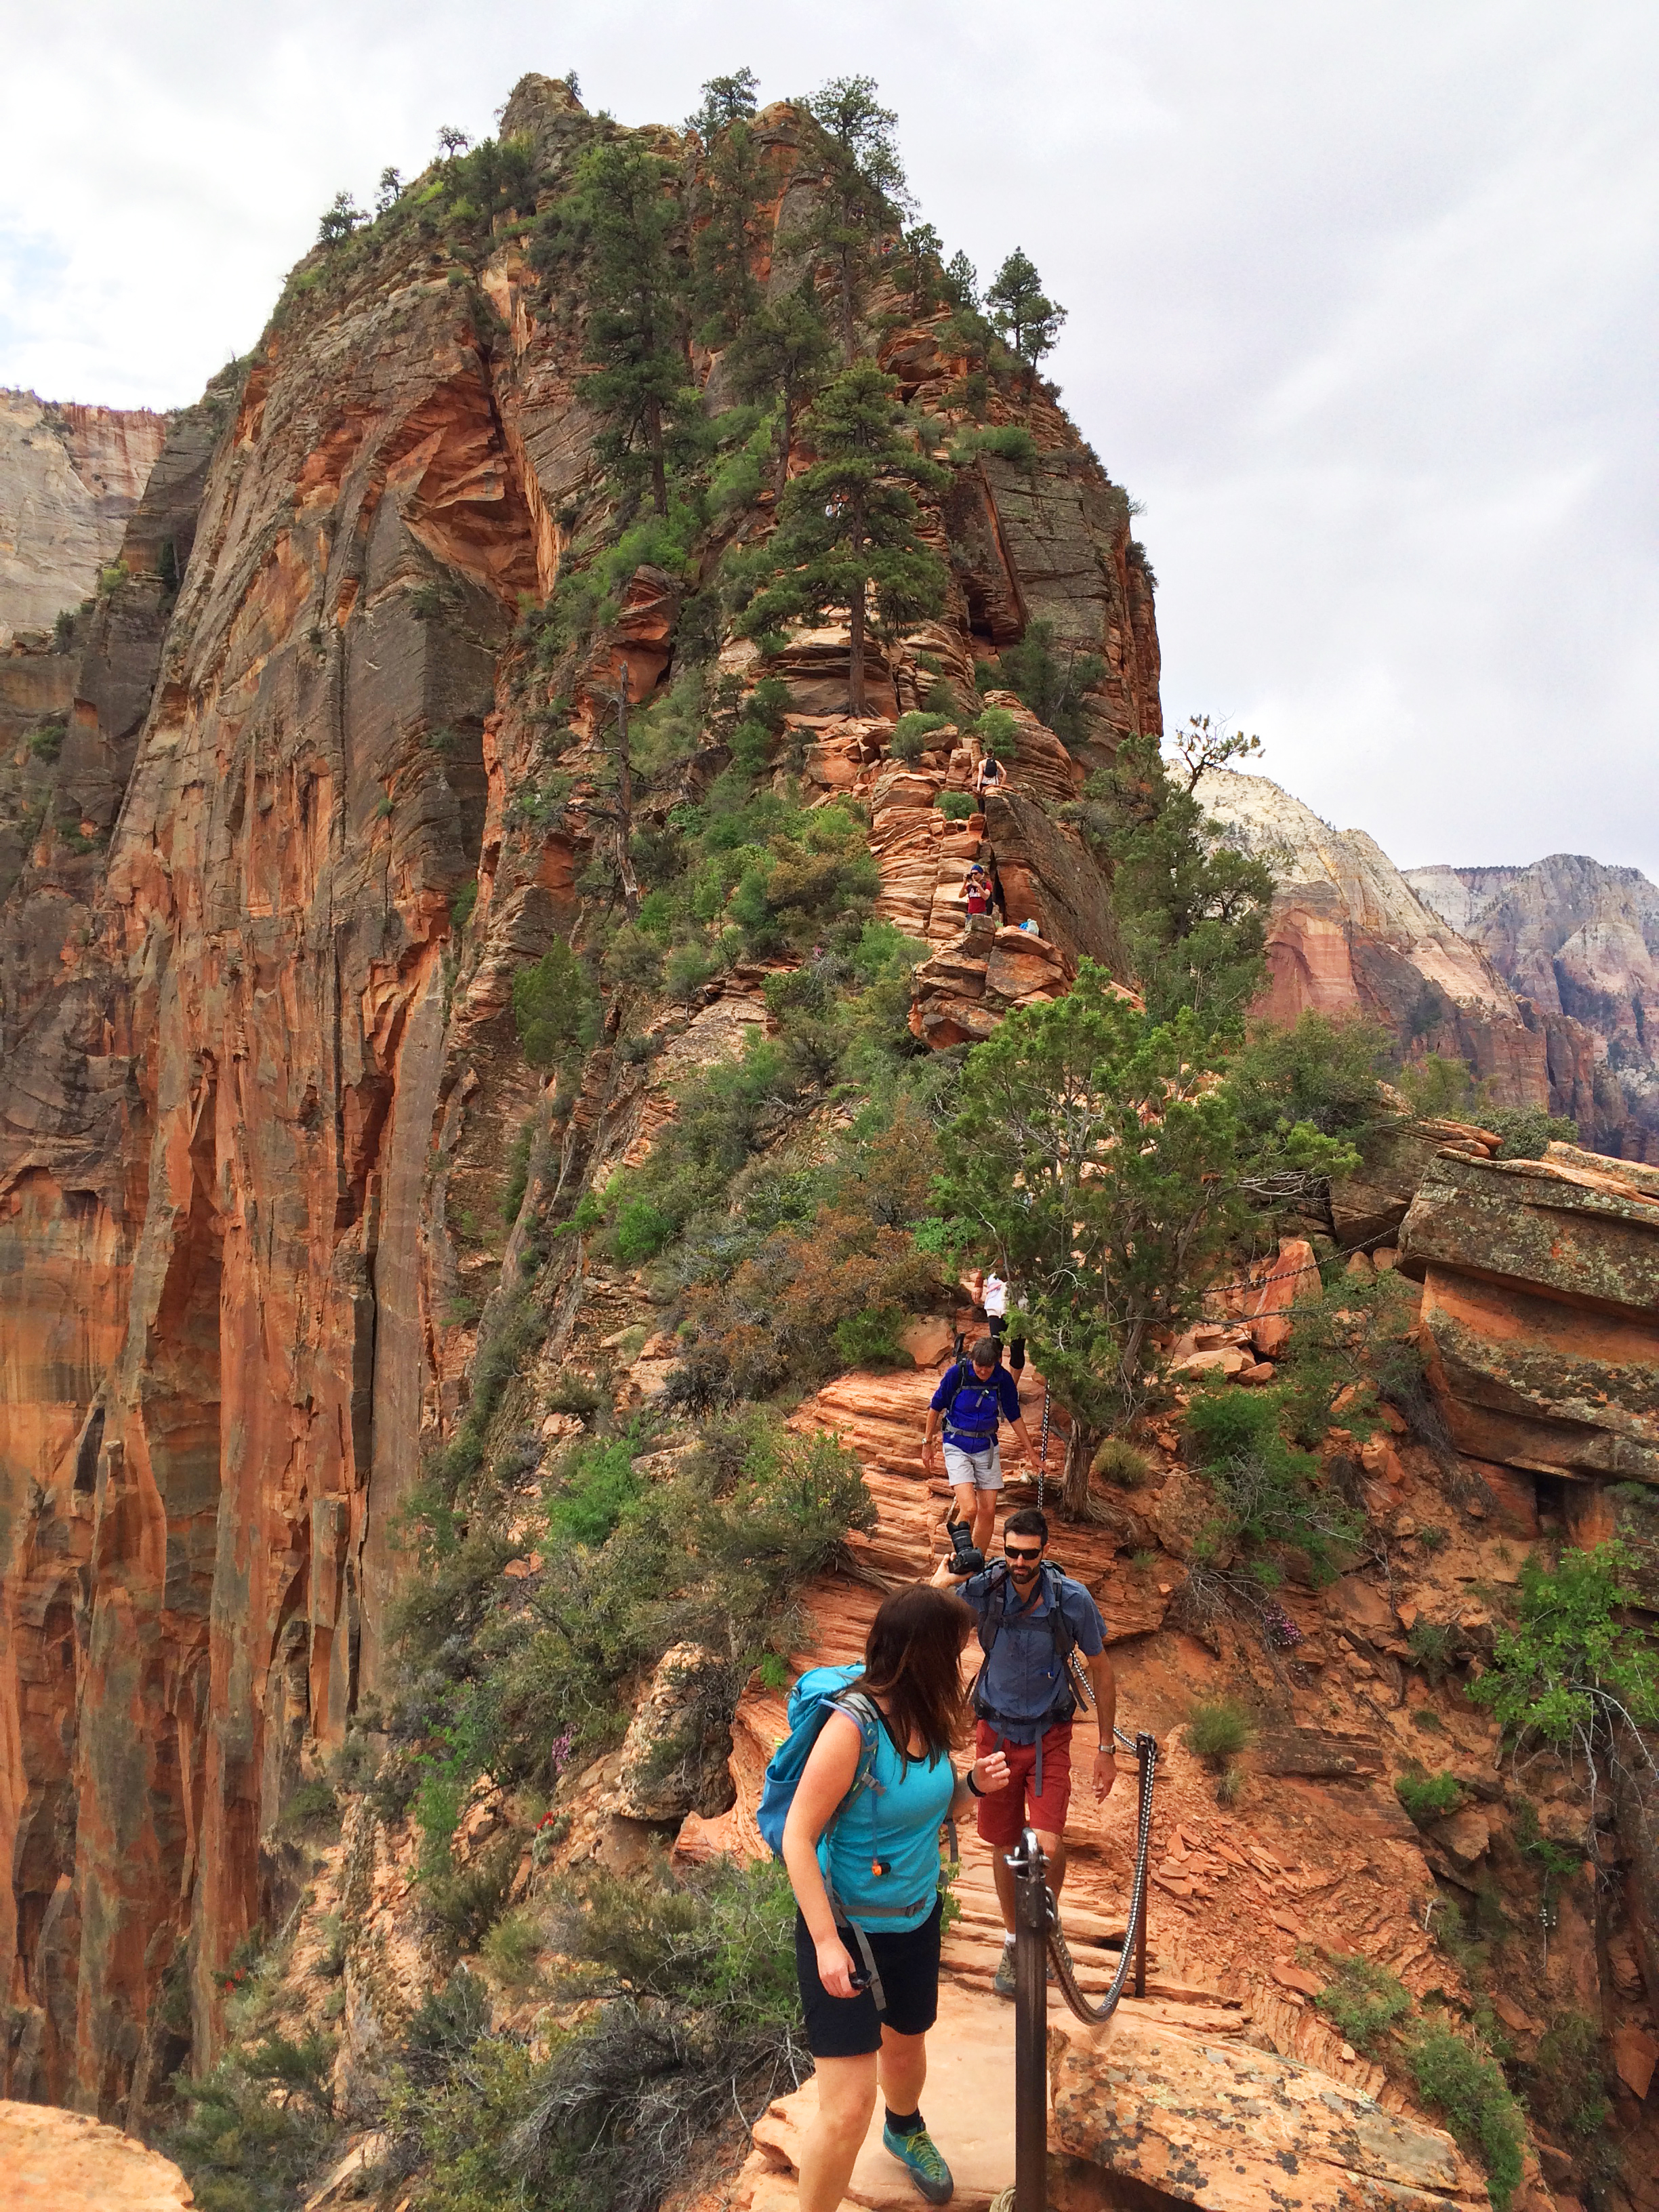 Hiking to the summit at Angel's Landing